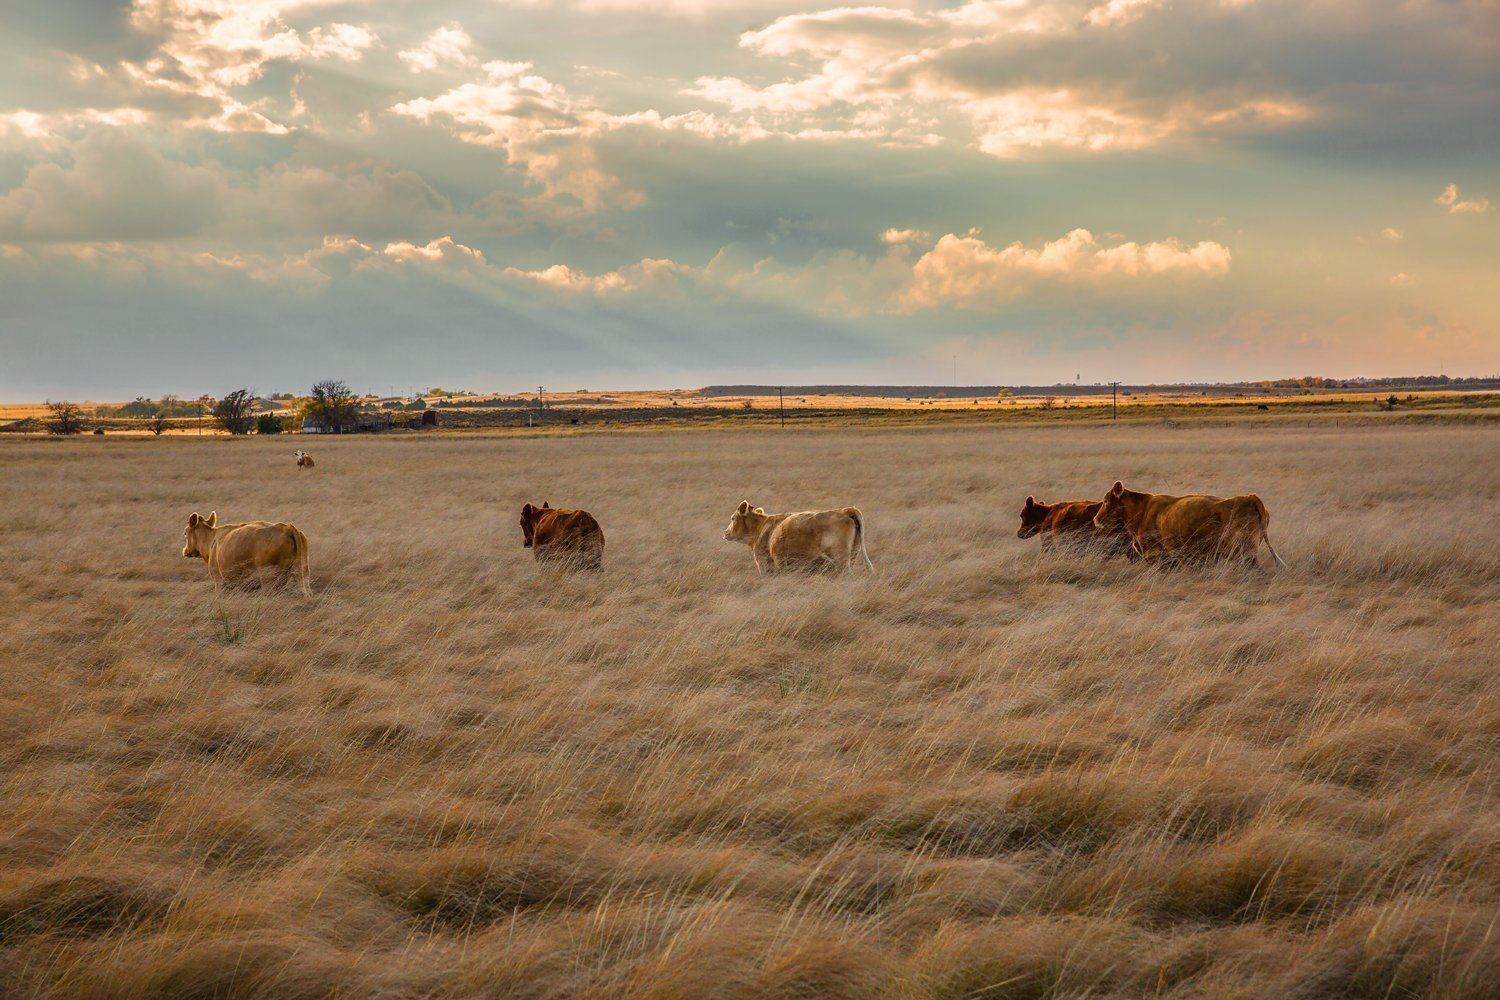 Texas Cattle Photography Art Print - Picture of Cows Wading Through Tall Grass in Panhandle Rustic Country Great Plains Decor Artwork for Home Decoration 5x7 to 30x45 by Southern Plains Photography